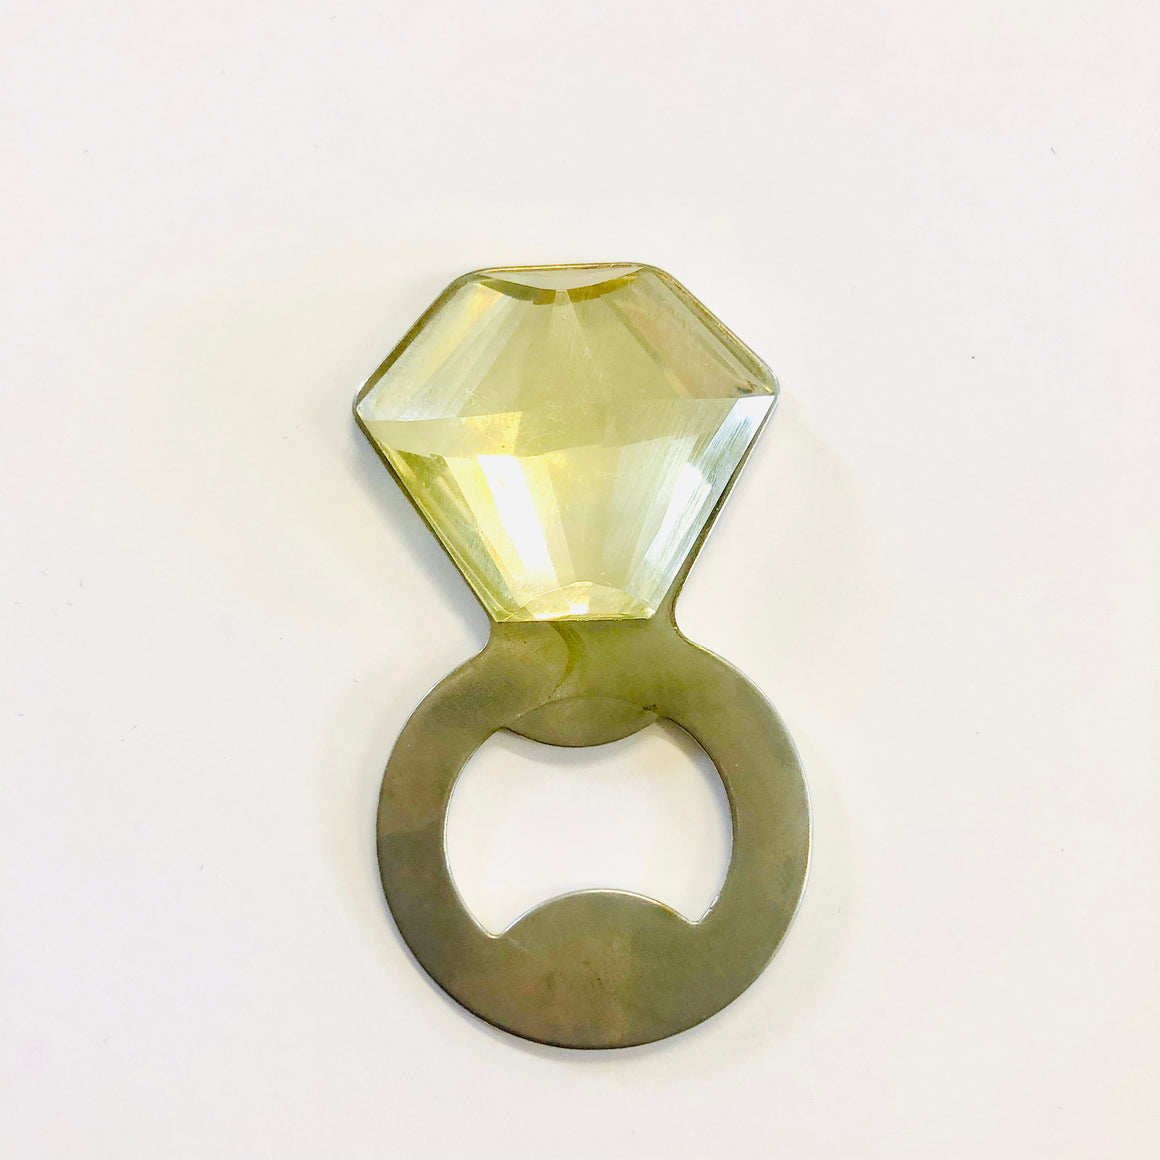 Diamond Bottle Opener - Minis